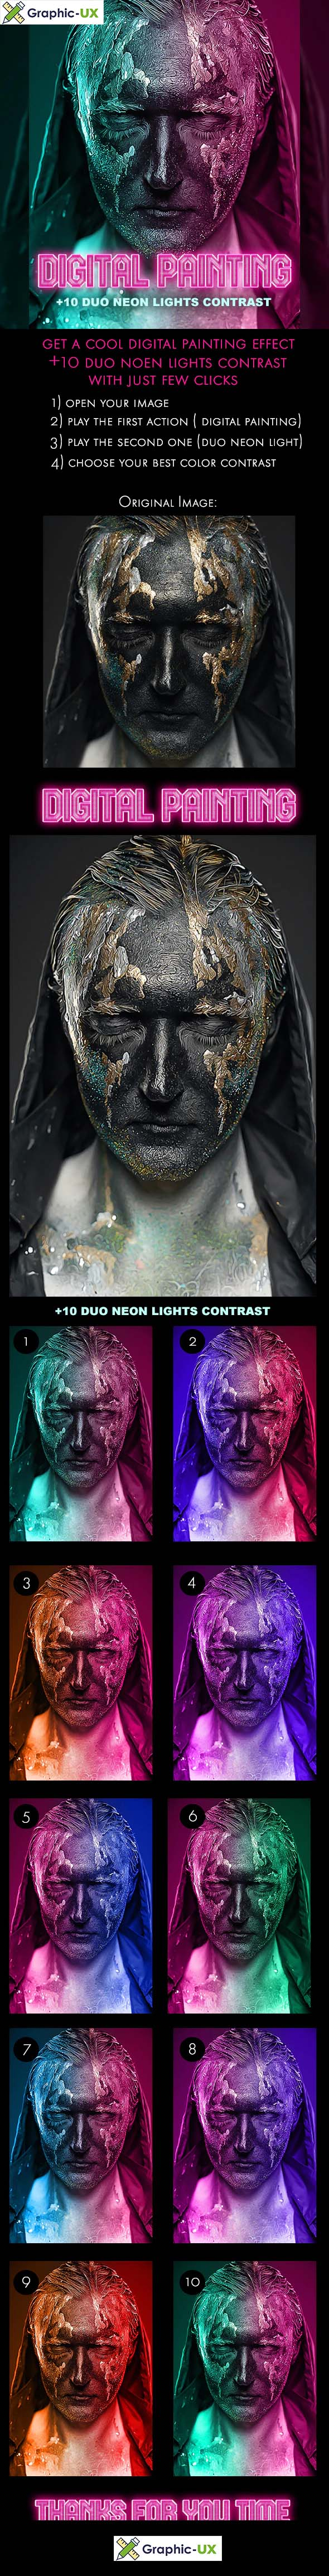 Digital Painting + 10 Duo Neon Light Contrast - Photoshop Action